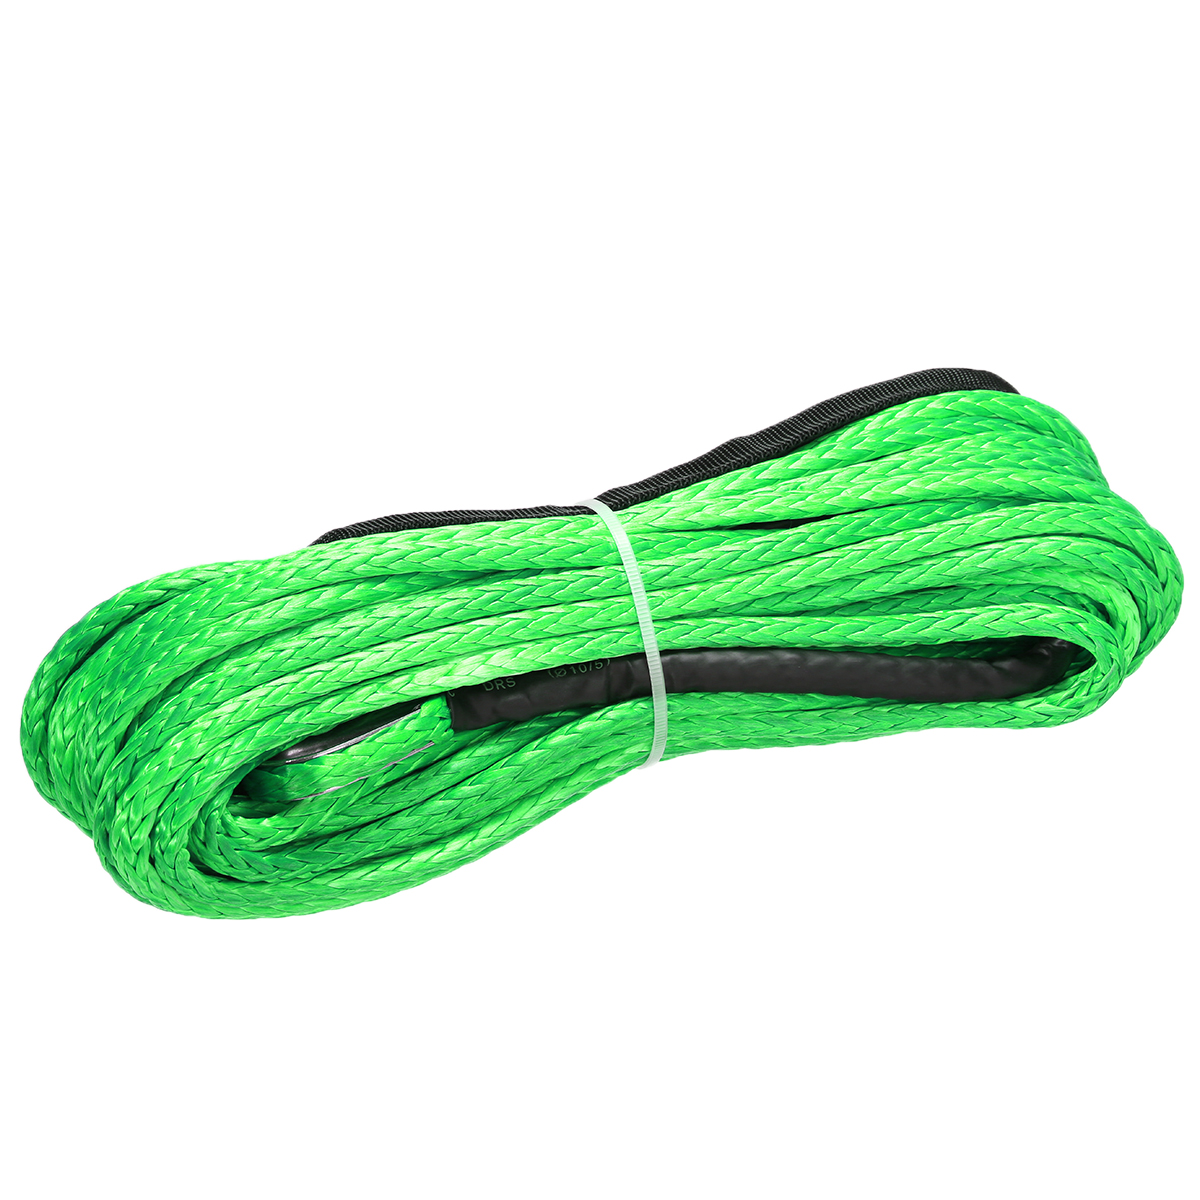 15M 5500lbs Synthetic Winch Rope Cable Line Towing Accessories for ATV UTV Off Road Green-in Towing Ropes from Automobiles & Motorcycles